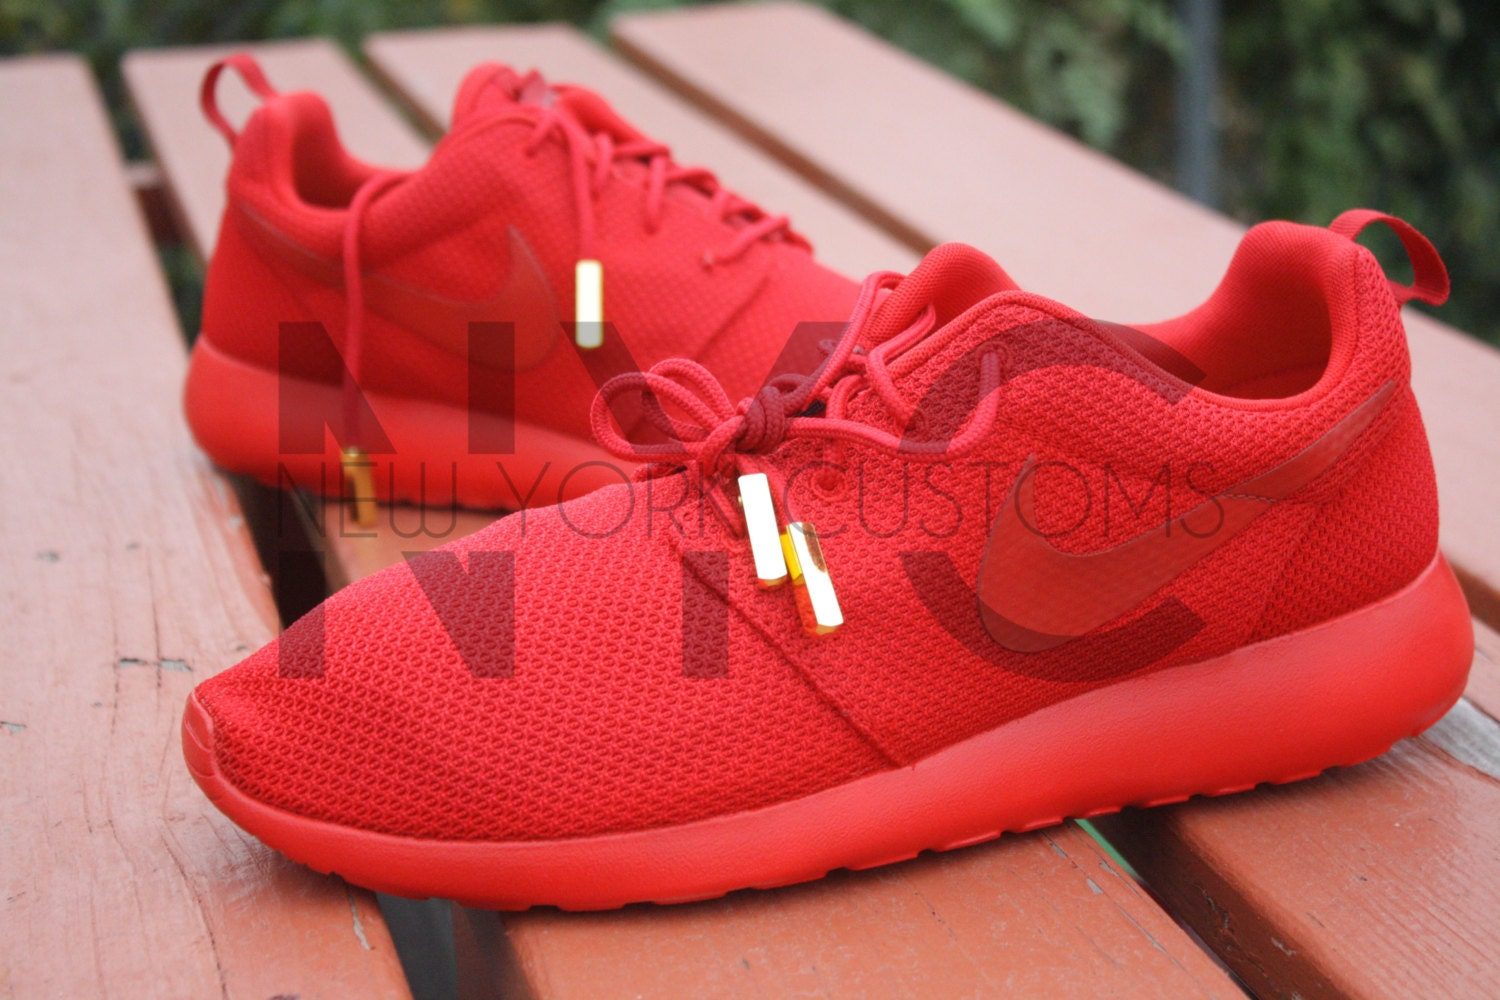 ypsiy Nike Roshe Run One Red October Yeezy w/ Gold Aglets by NYCustoms